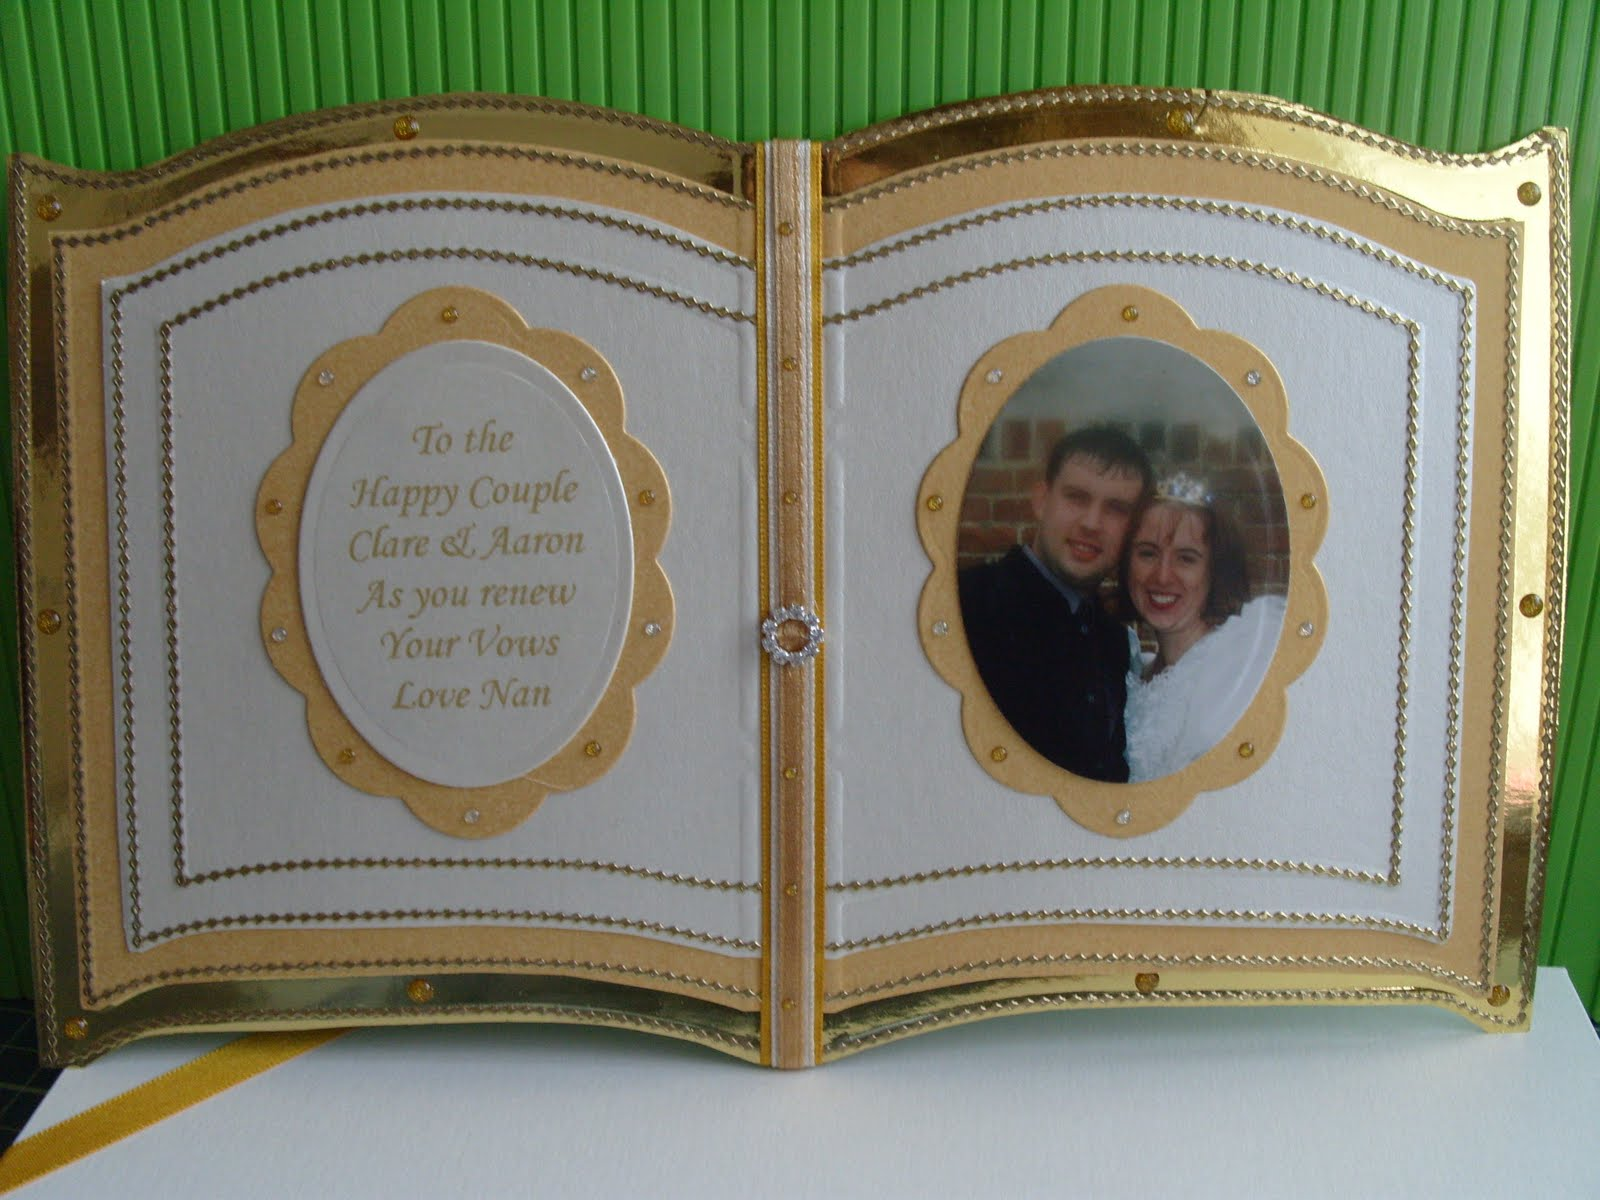 A Wedding Blessing Greeting Card - Zazzle.com.au